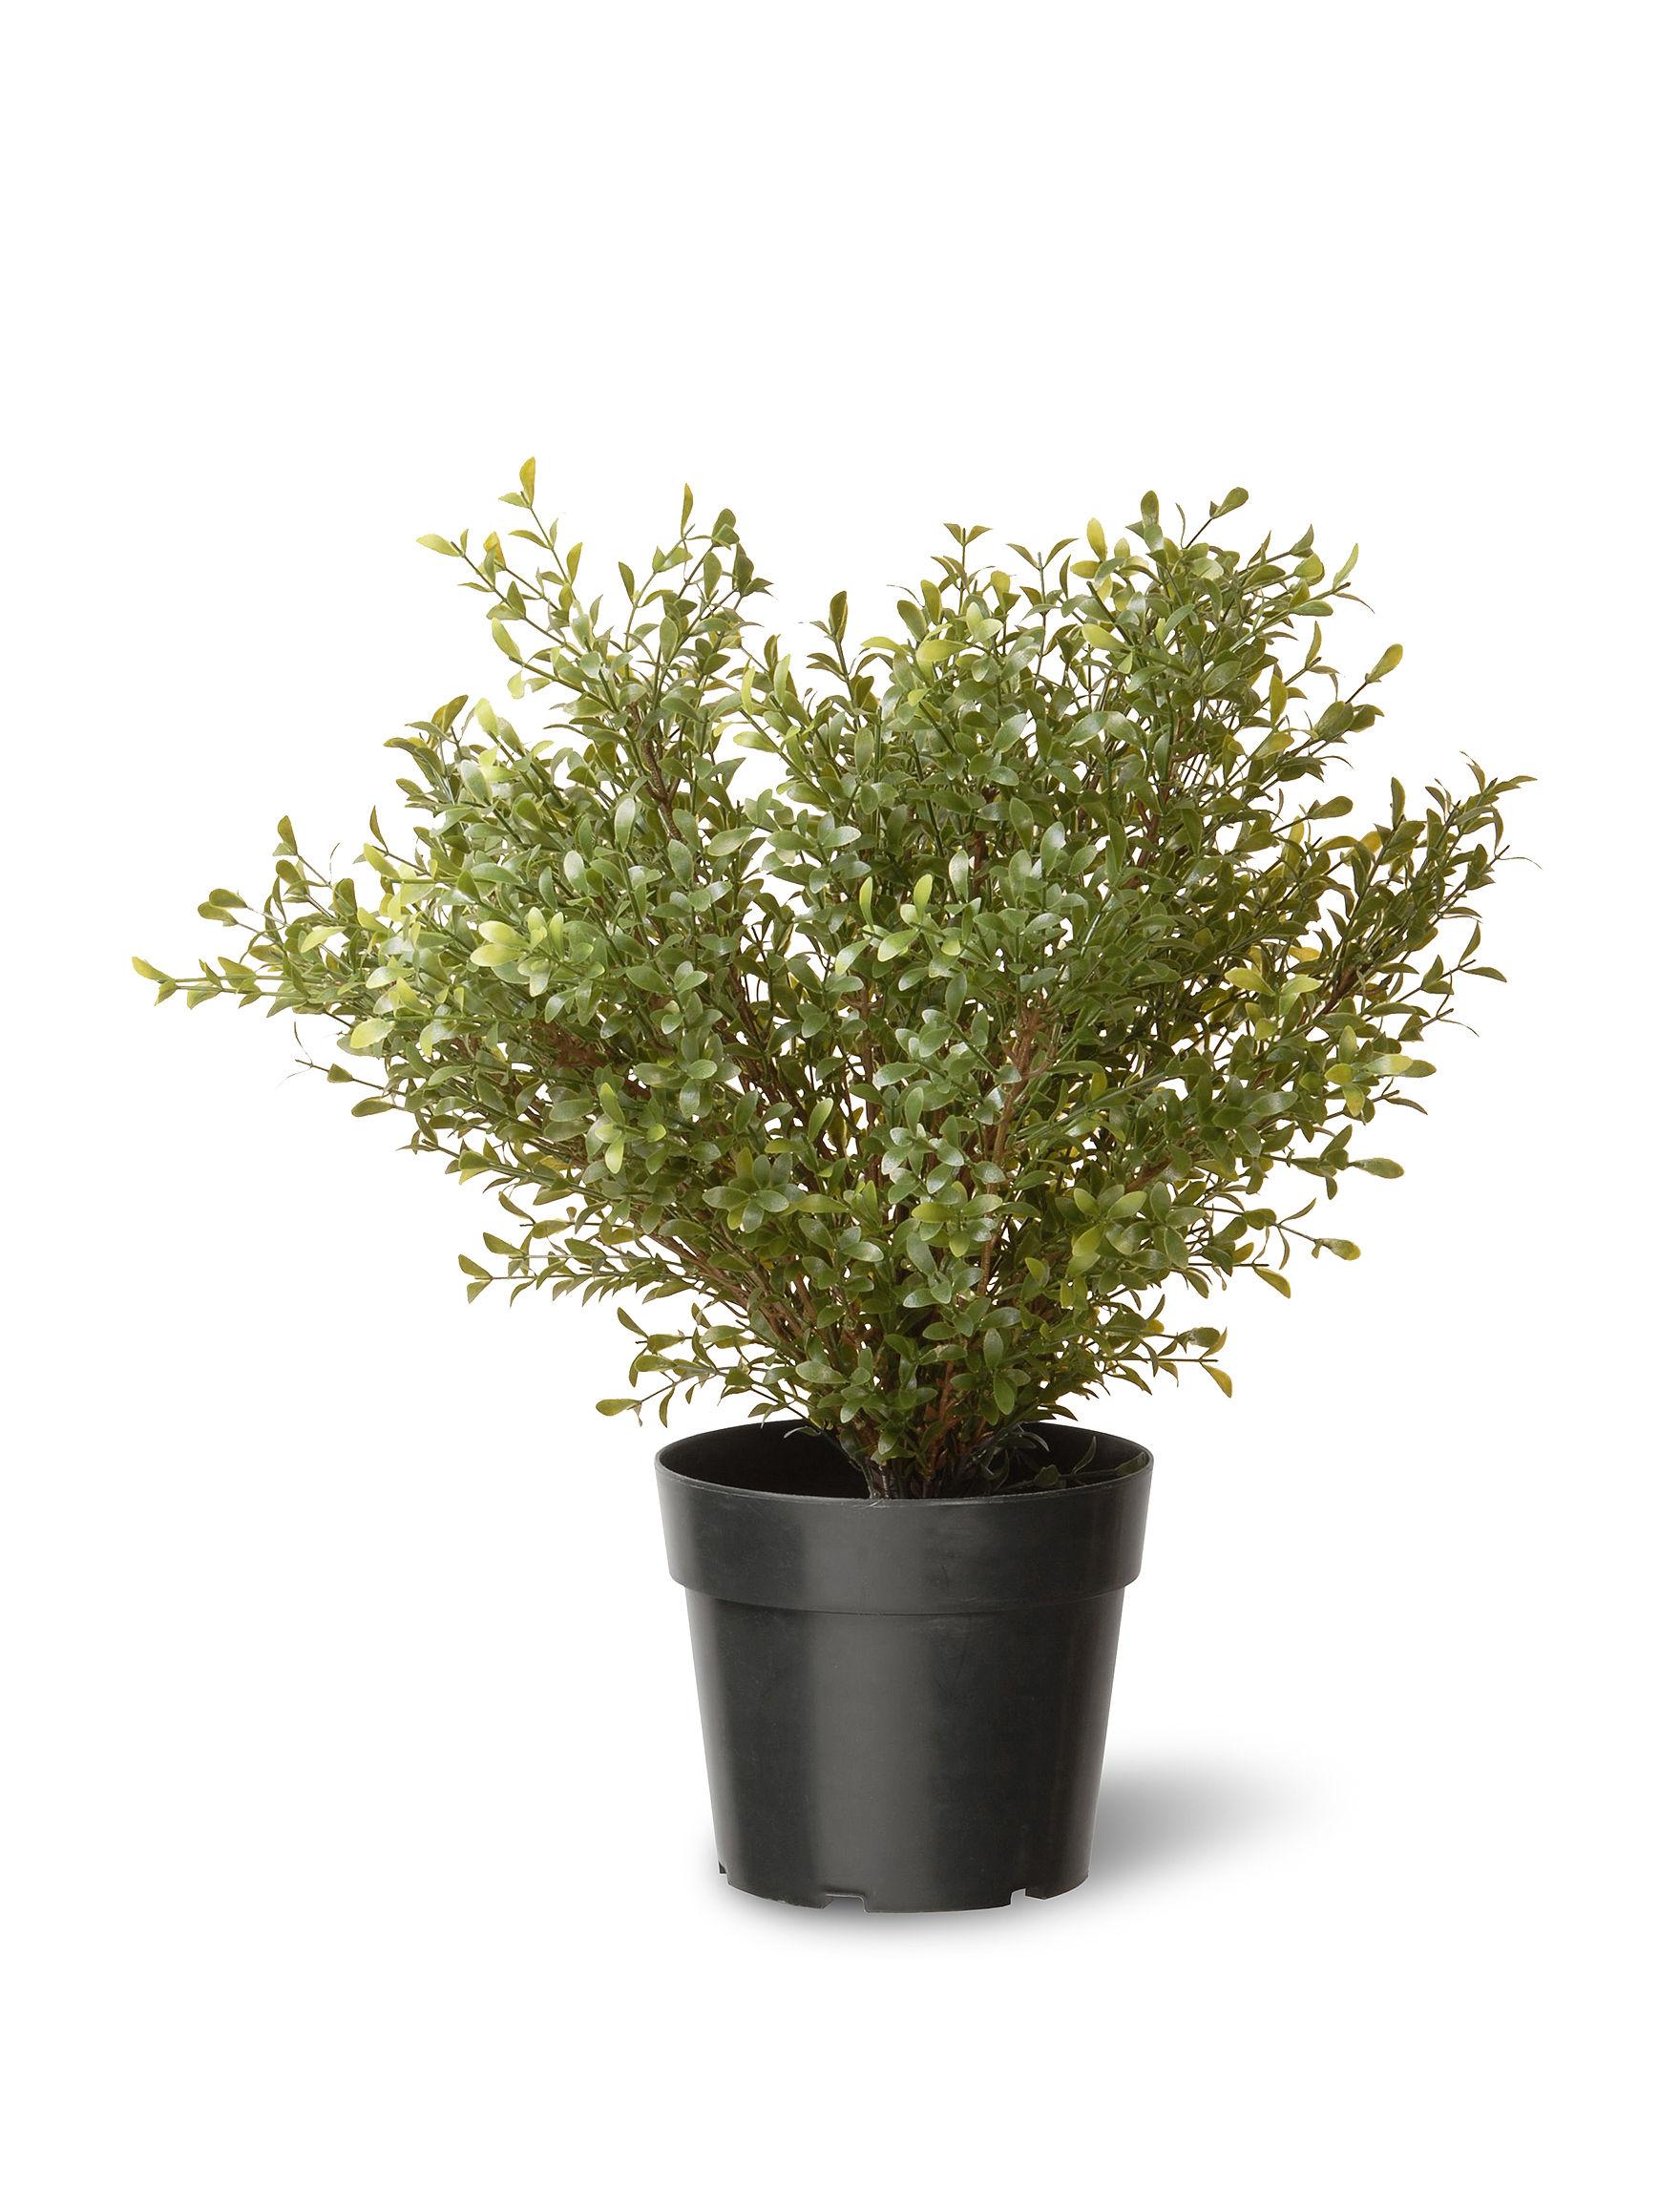 Outdoor Decor Company National Tree Company 24 Inch Argentia Plant With Pot Stage Stores